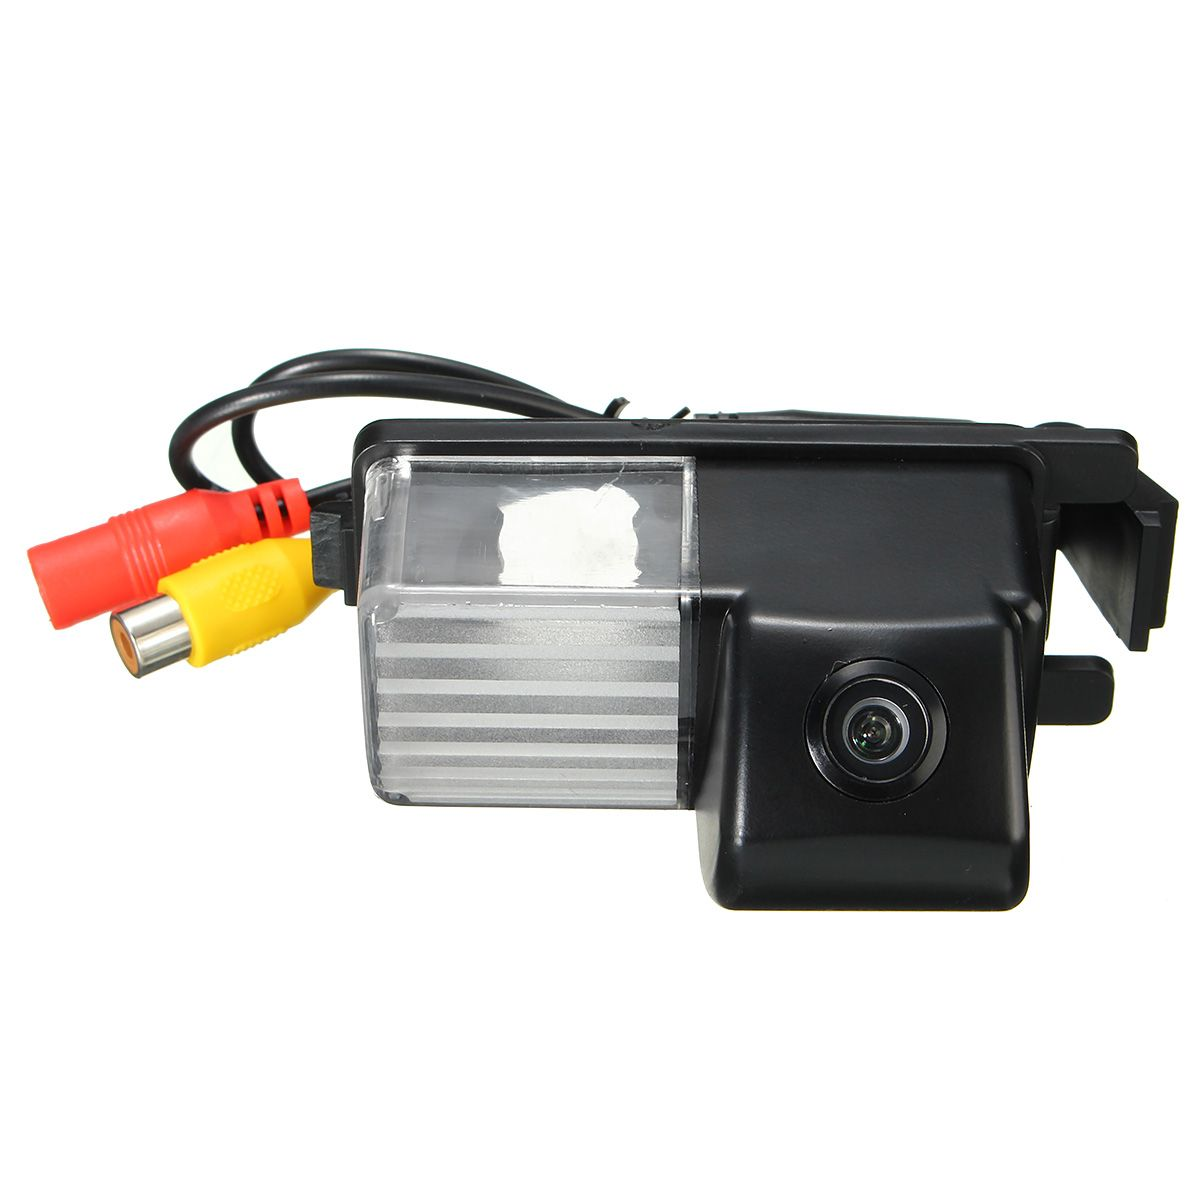 CCD Rear View Camera For NISSAN Versa Pulsar Cube 350Z 370Z GTR ...